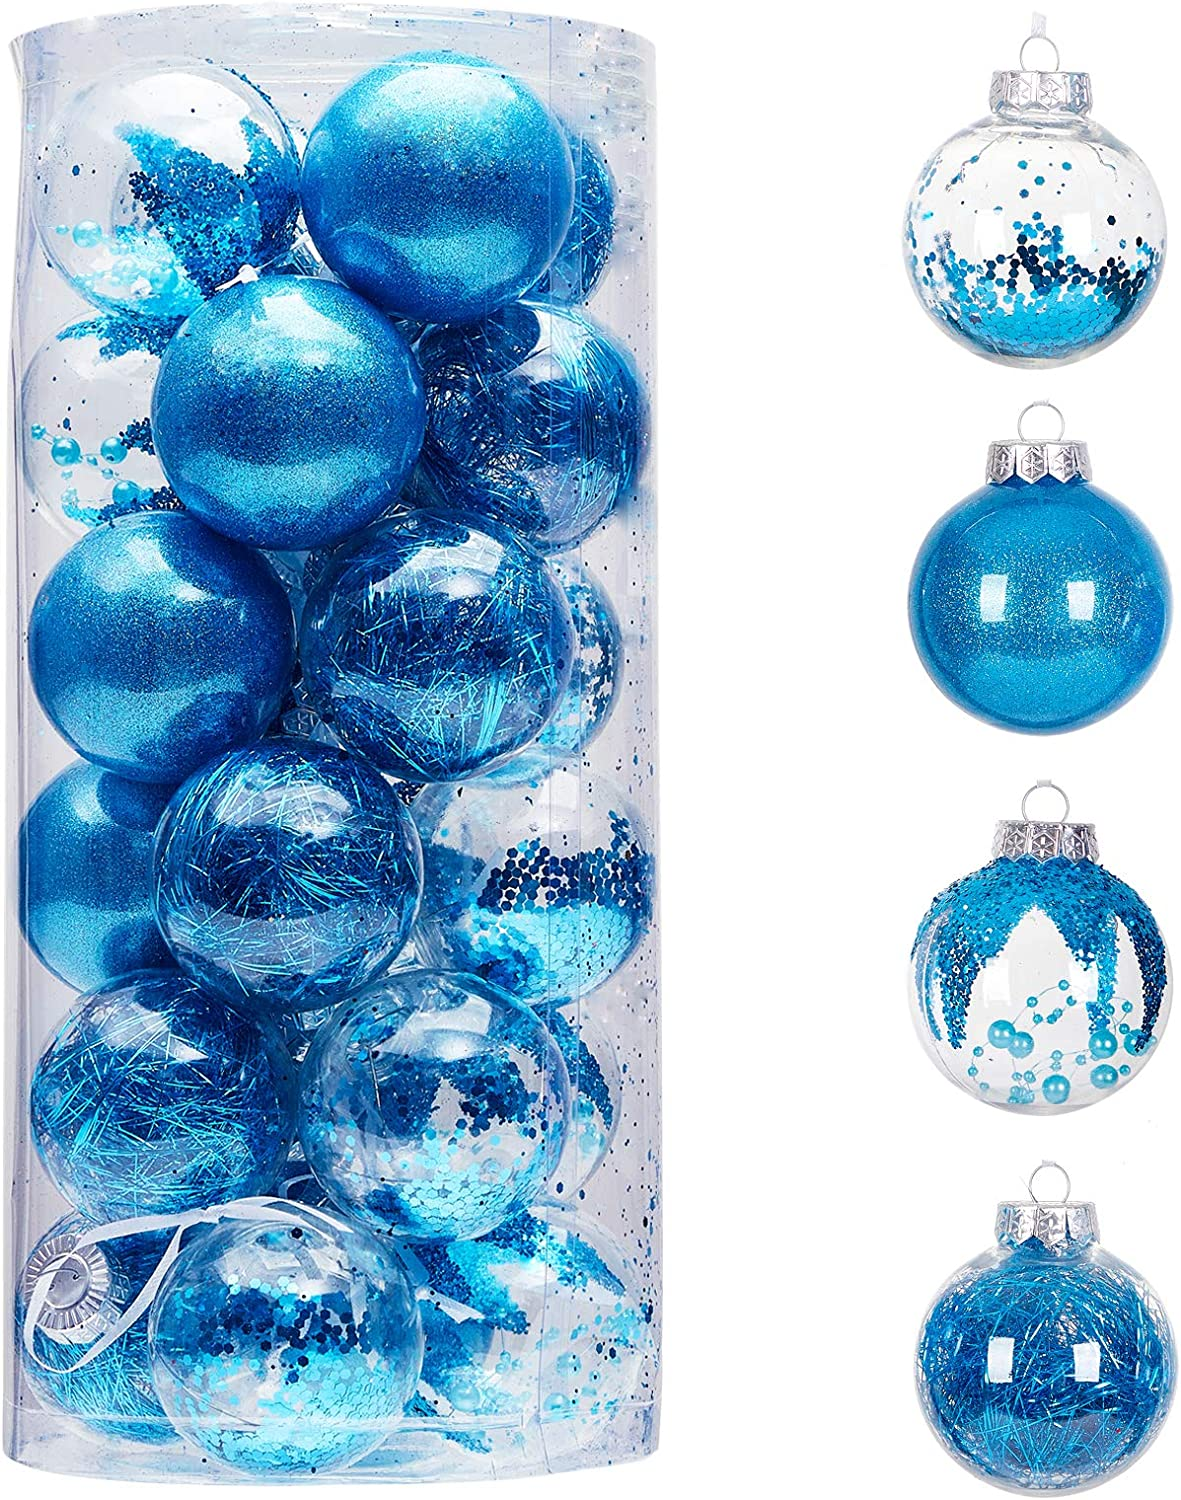 """24ct 70mm/2.76"""" Clear Christmas Ball Ornaments, Shatterproof Plastic Christmas Tree Ornaments Baubles with Stuffed Decorations, Hanging Balls for Xmas and New Year Holiday Home Party Decor, Blue"""